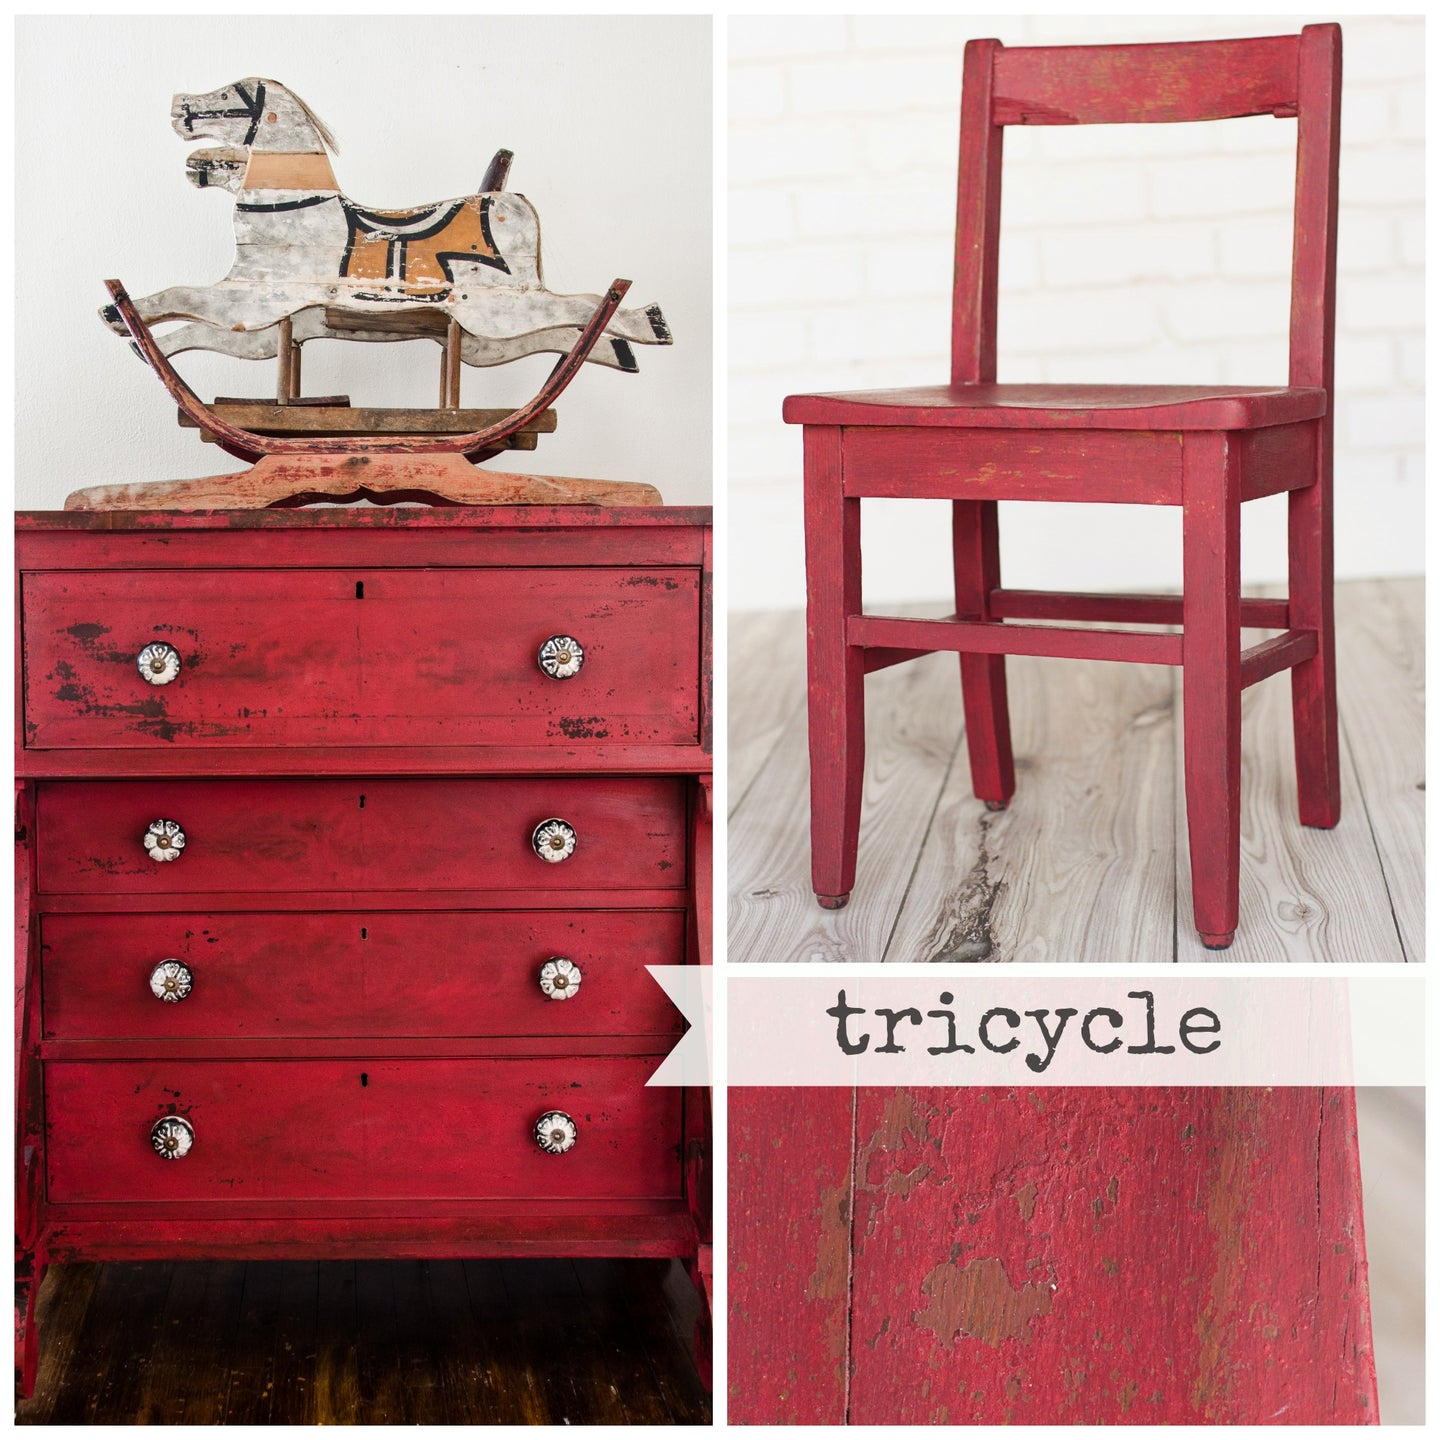 Tricycle - Miss Mustard Seed Milk Paint 230g